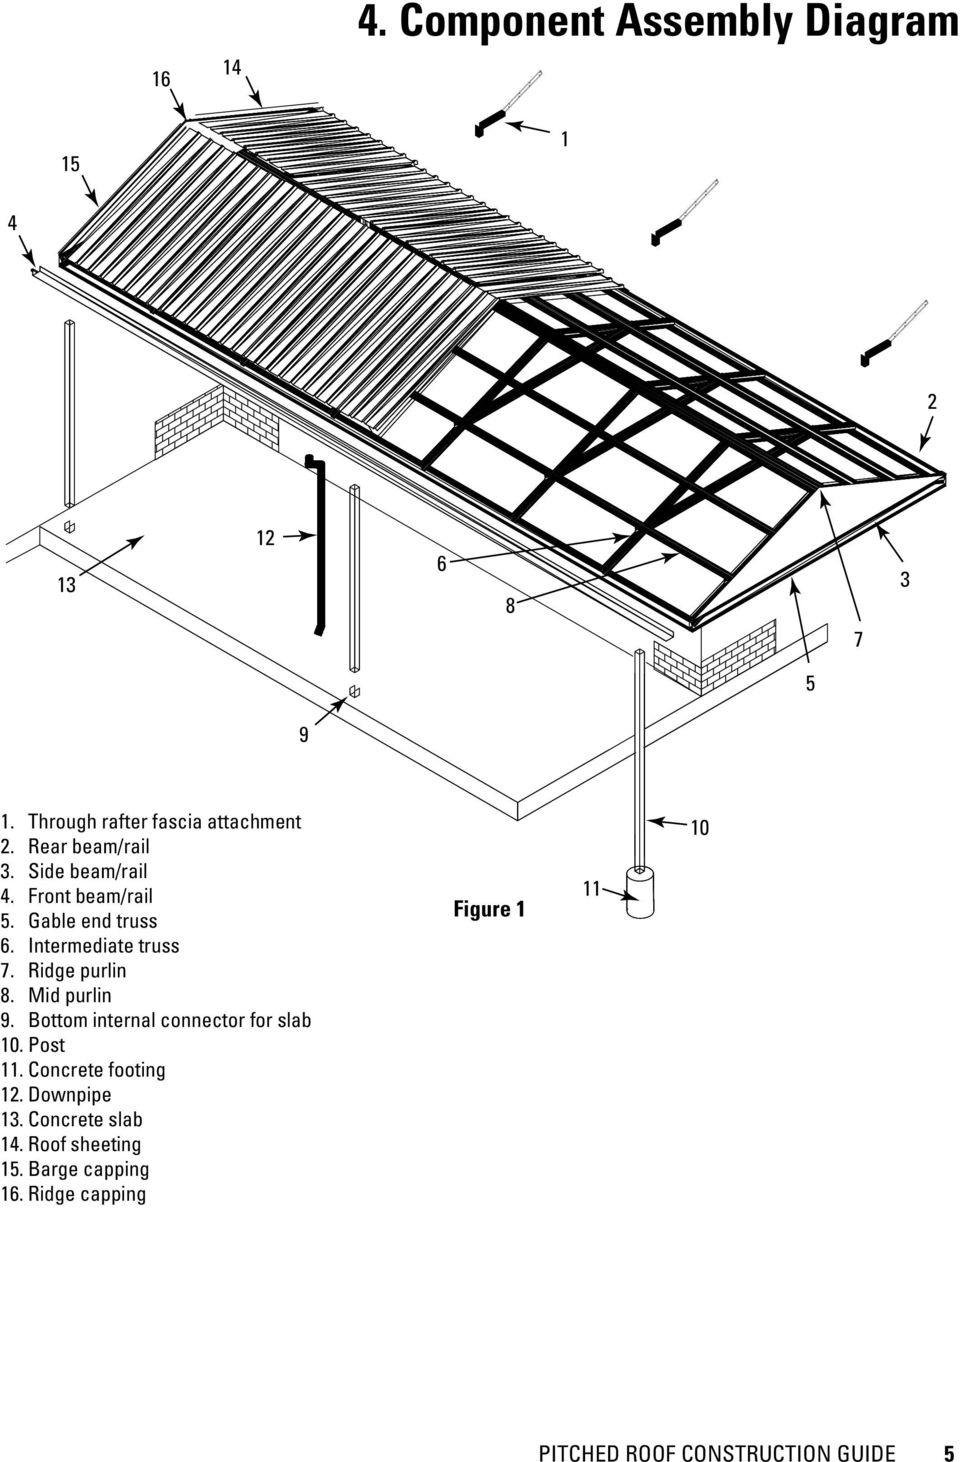 Construction Guide  Pitched Roof Patio Pitched Roof Awning - PDF